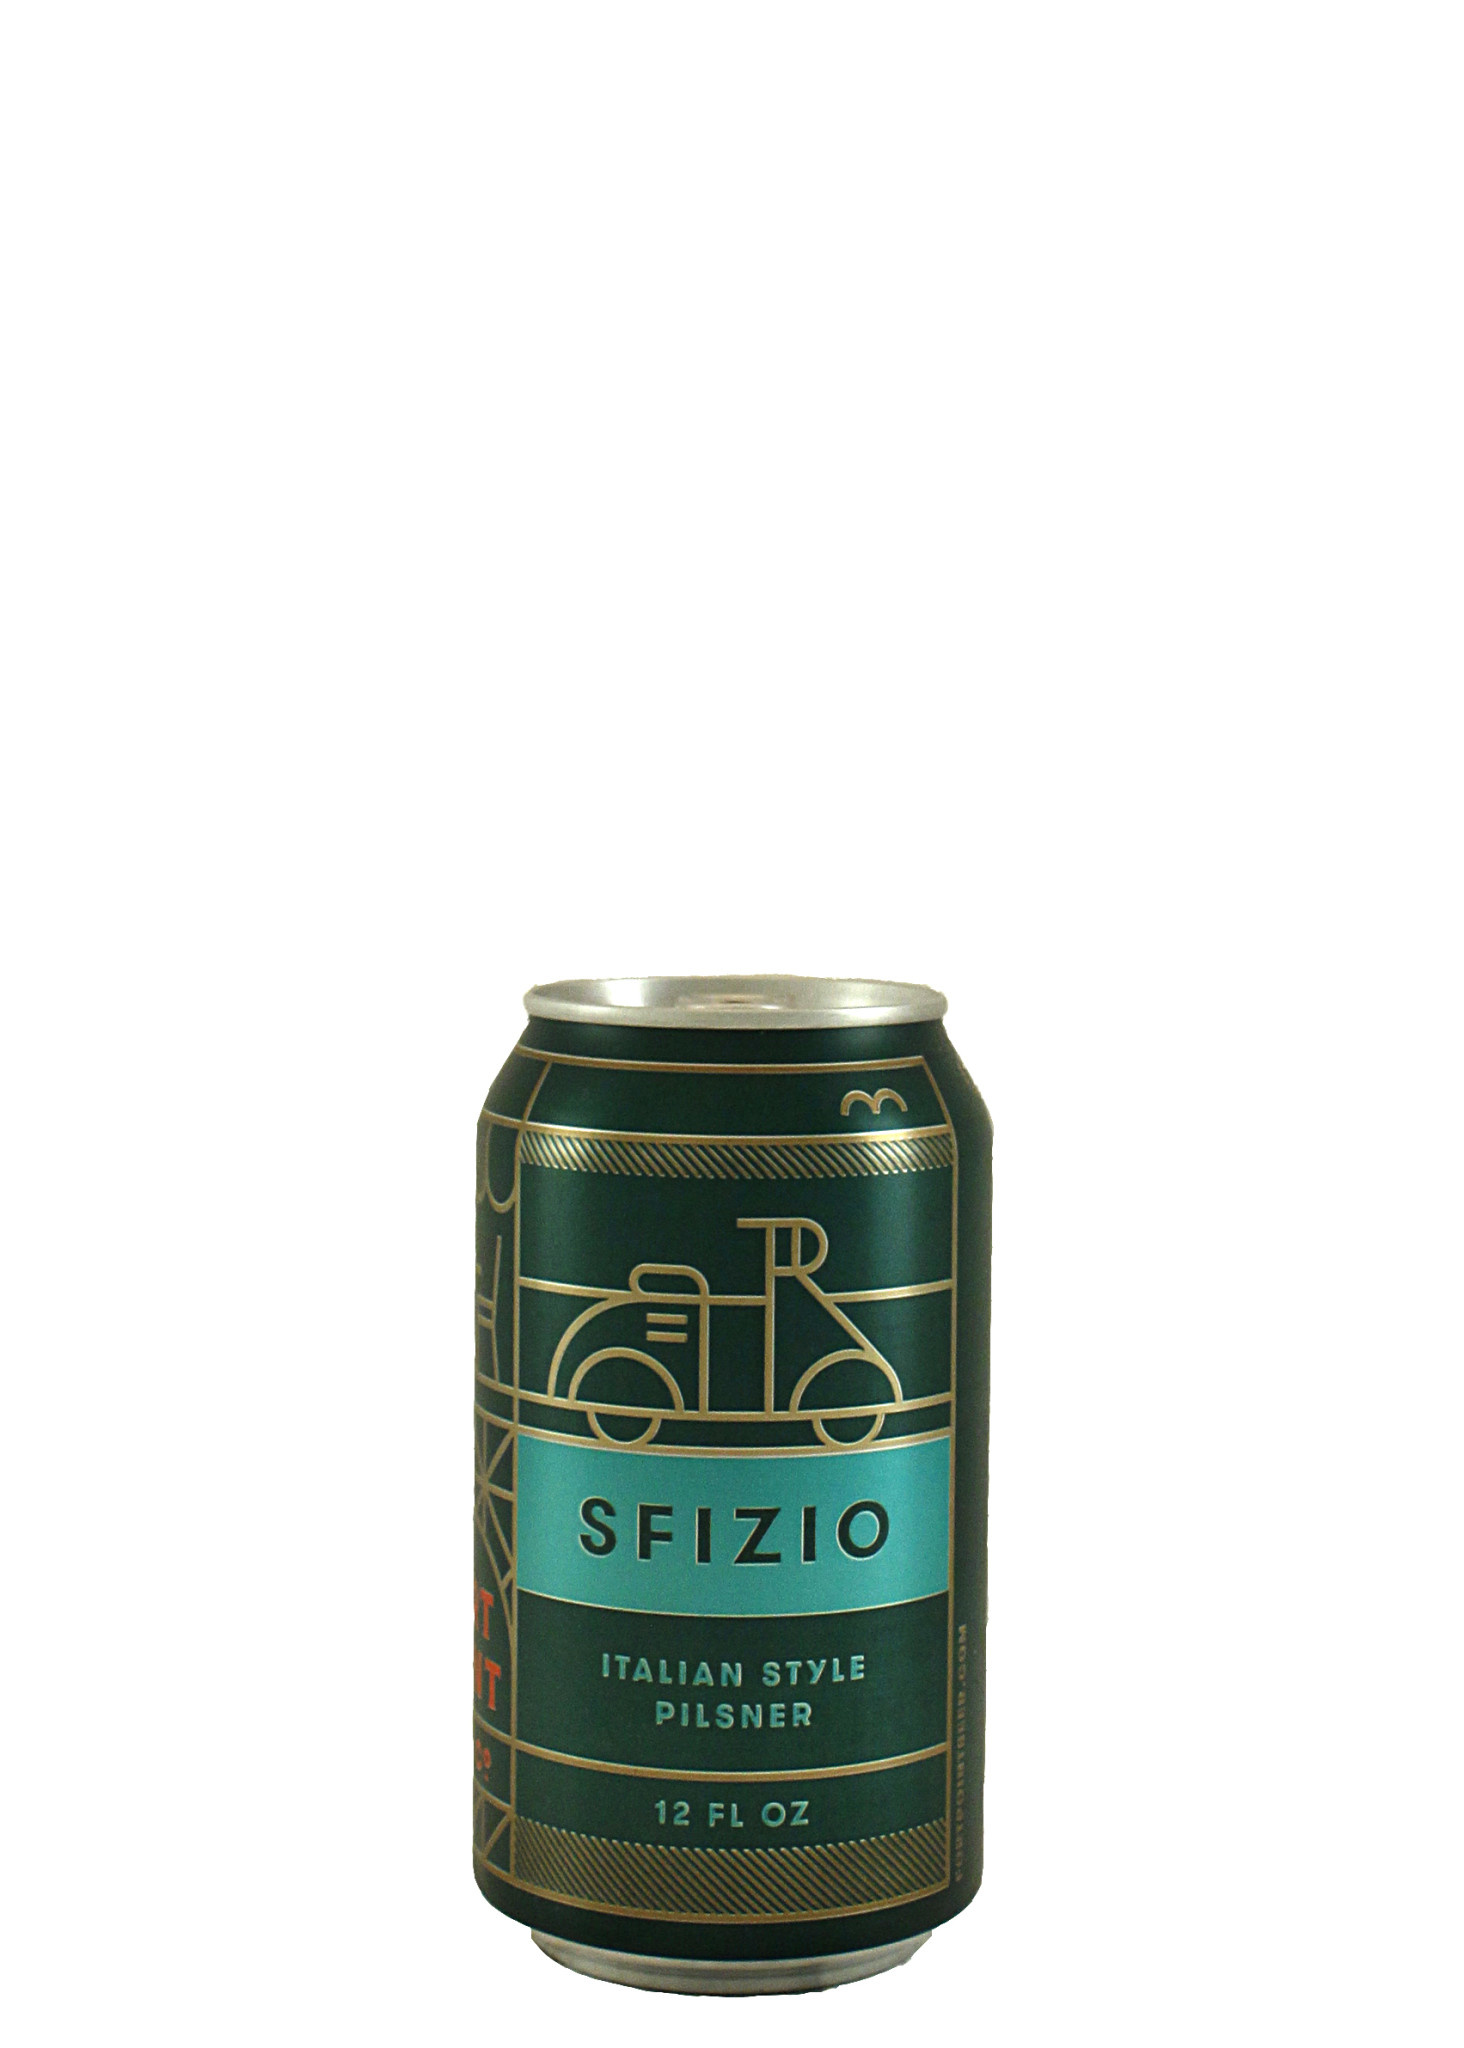 """Fort Point Beer Co. """"SFIZIO"""" Italian-Style Pilsner 12oz. Can - San Francisco, CA"""